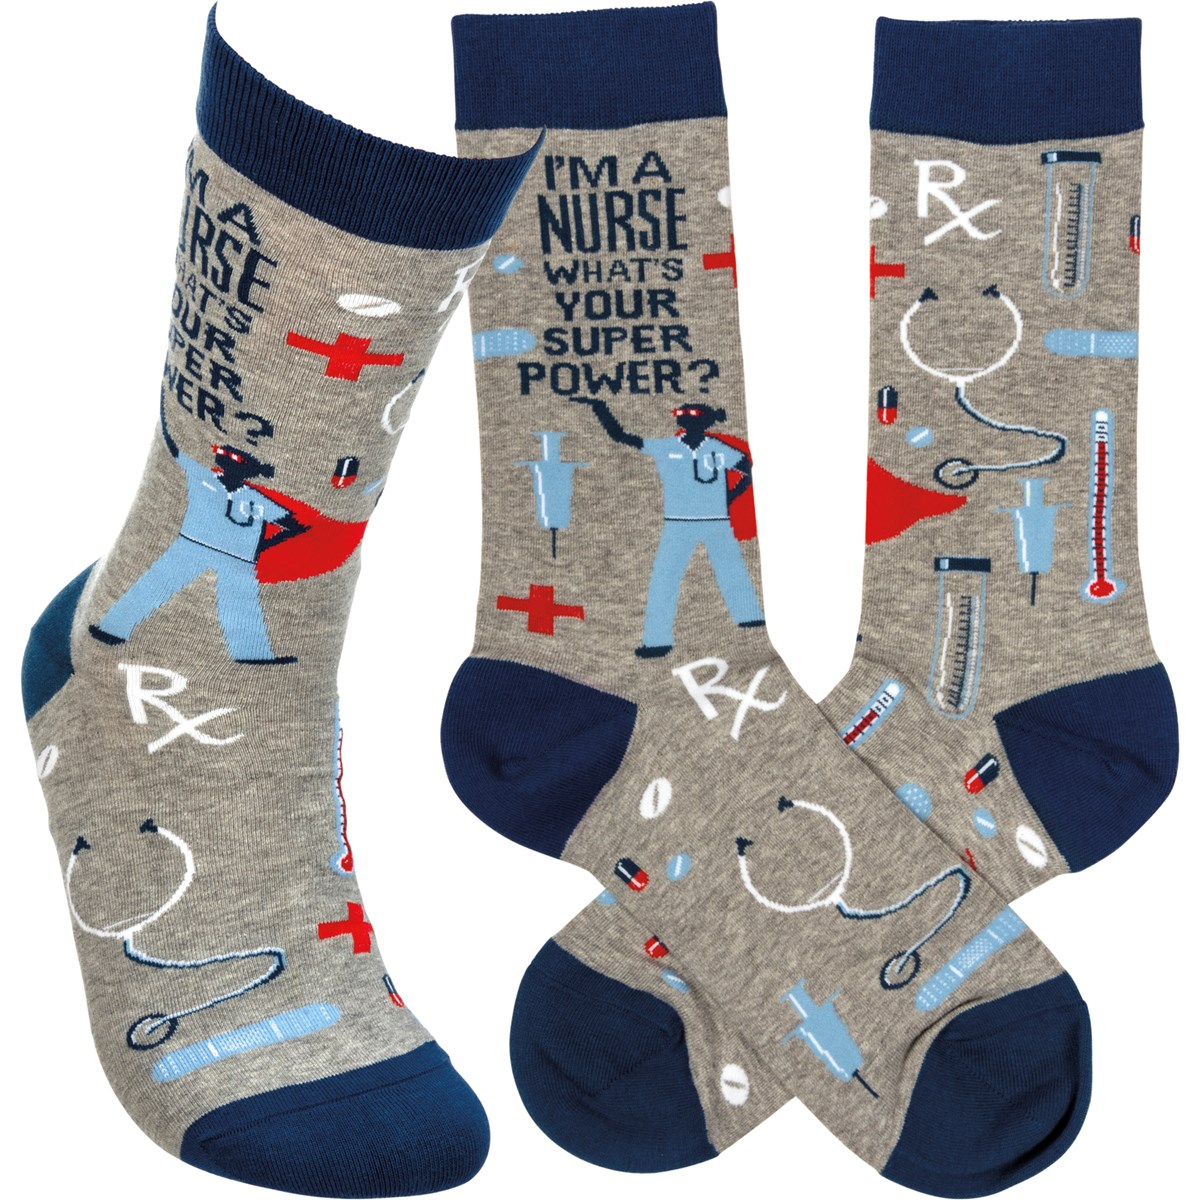 Socks - I'm A Nurse What's Your Super Power - One Size Fits Most - Cotton, Nylon, Spandex